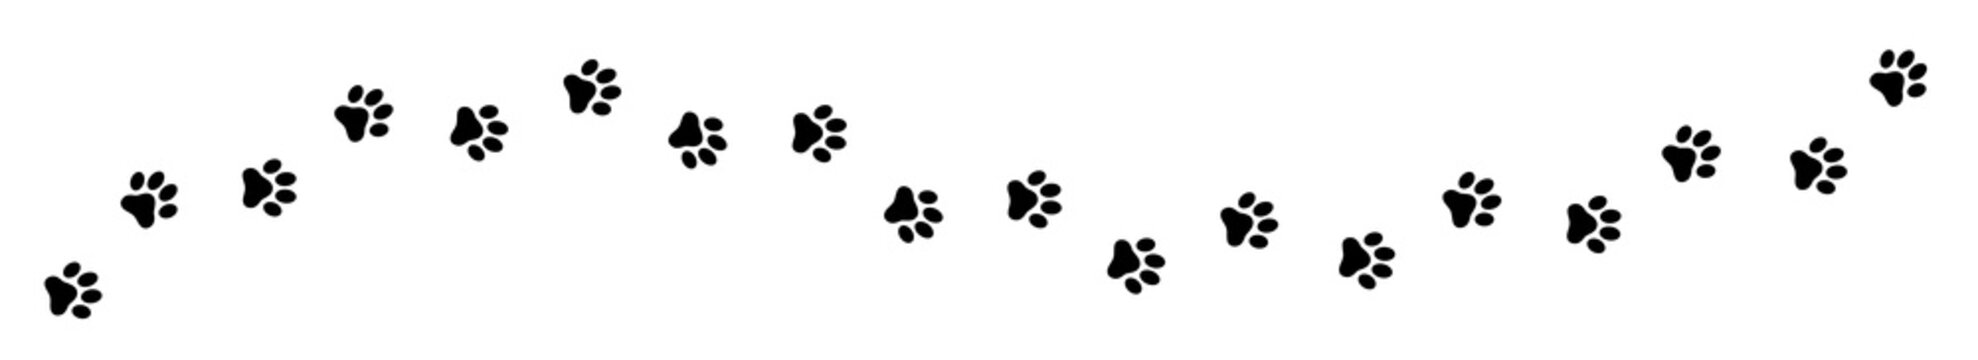 Paw print cat, dog, puppy pet trace. Flat style - stock vector.